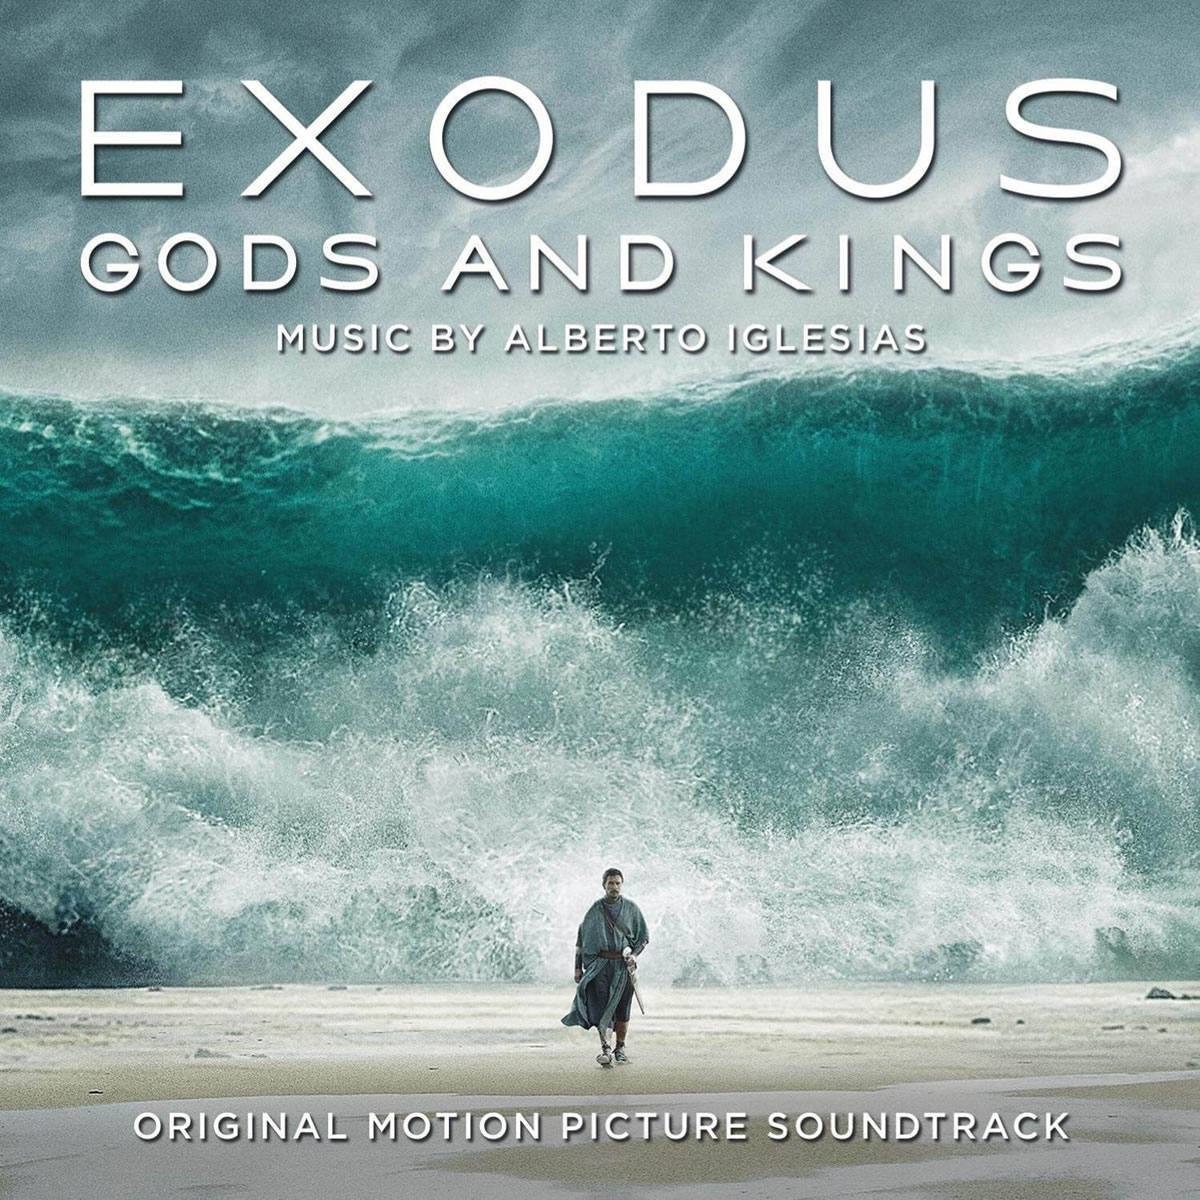 EXODUS: GODS AND KINGS - ORIGINAL MOTION PICTURE SOUNDTRACK (AUDIO CD)